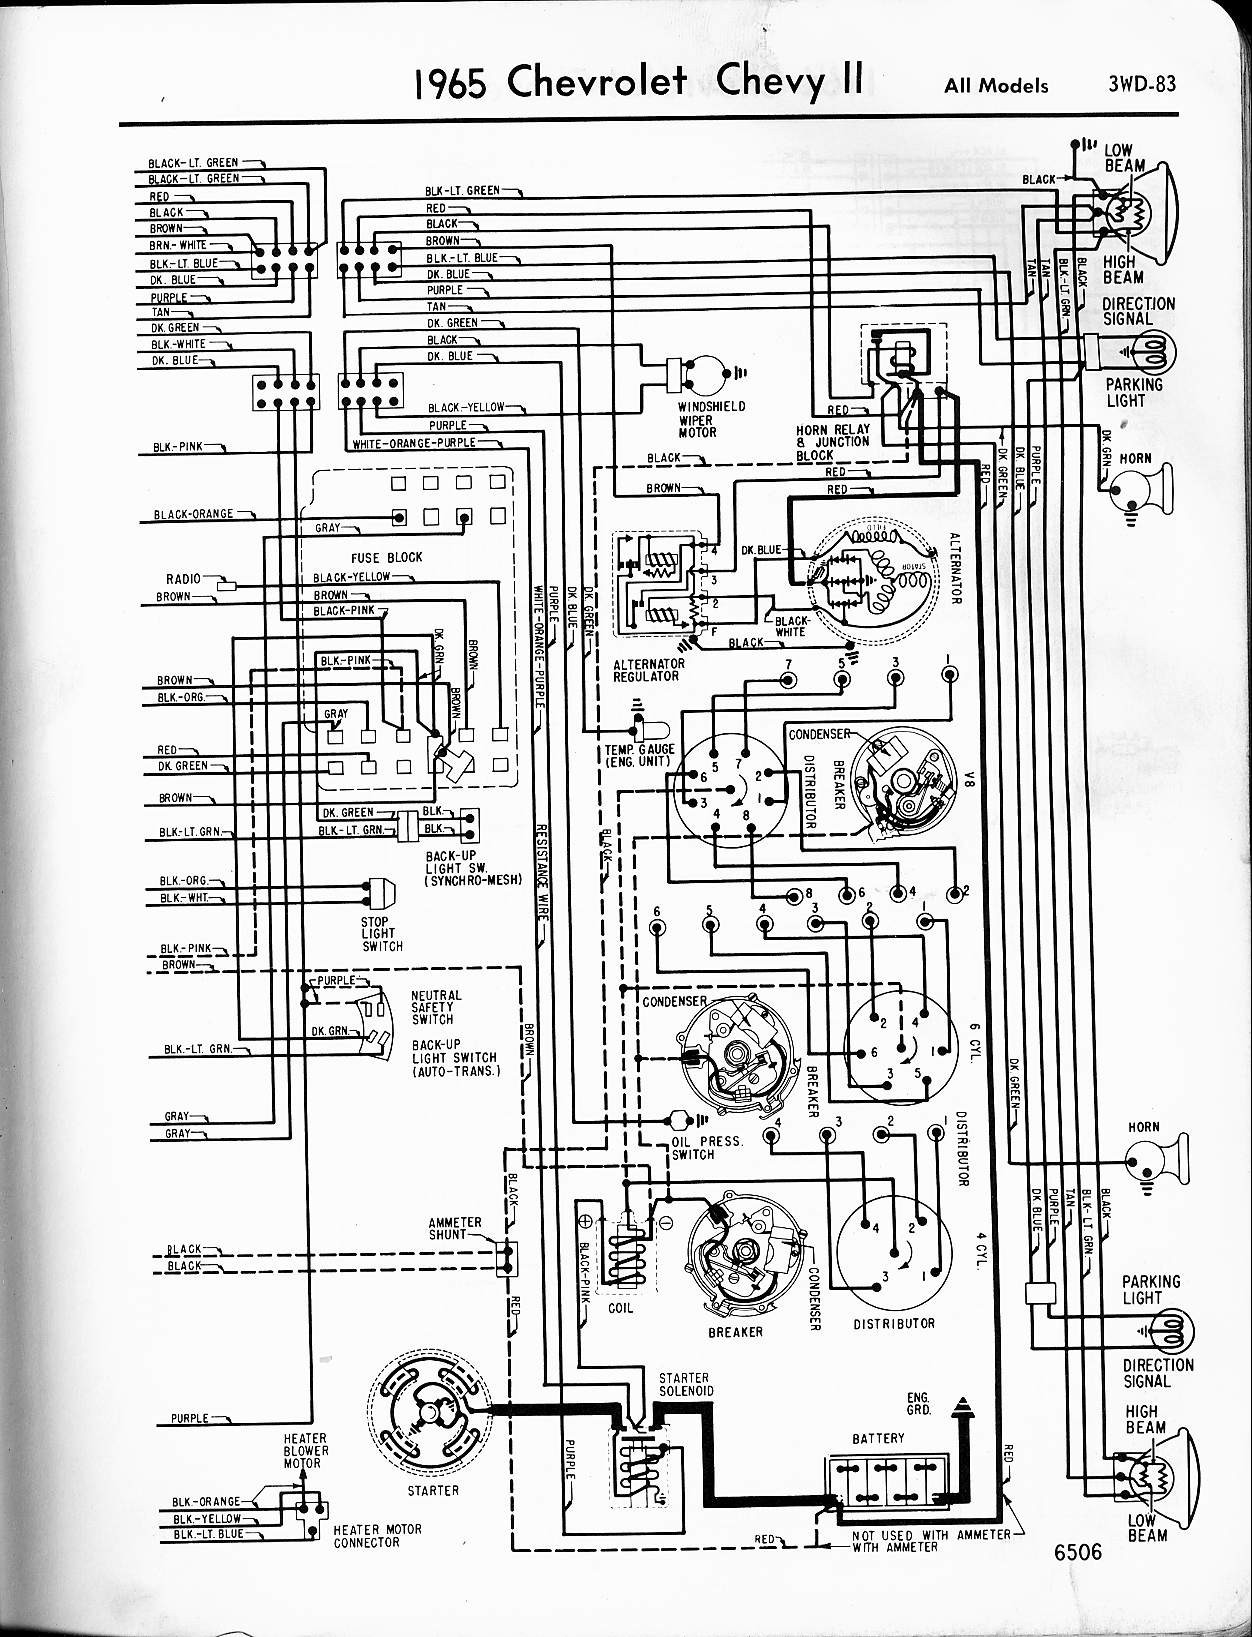 1951 ford truck wiring diagram library of wiring diagrams u2022 rh sv ti  com 1980 Ford Truck Wiring Diagram 1951 Ford Wiring Diagram Manual